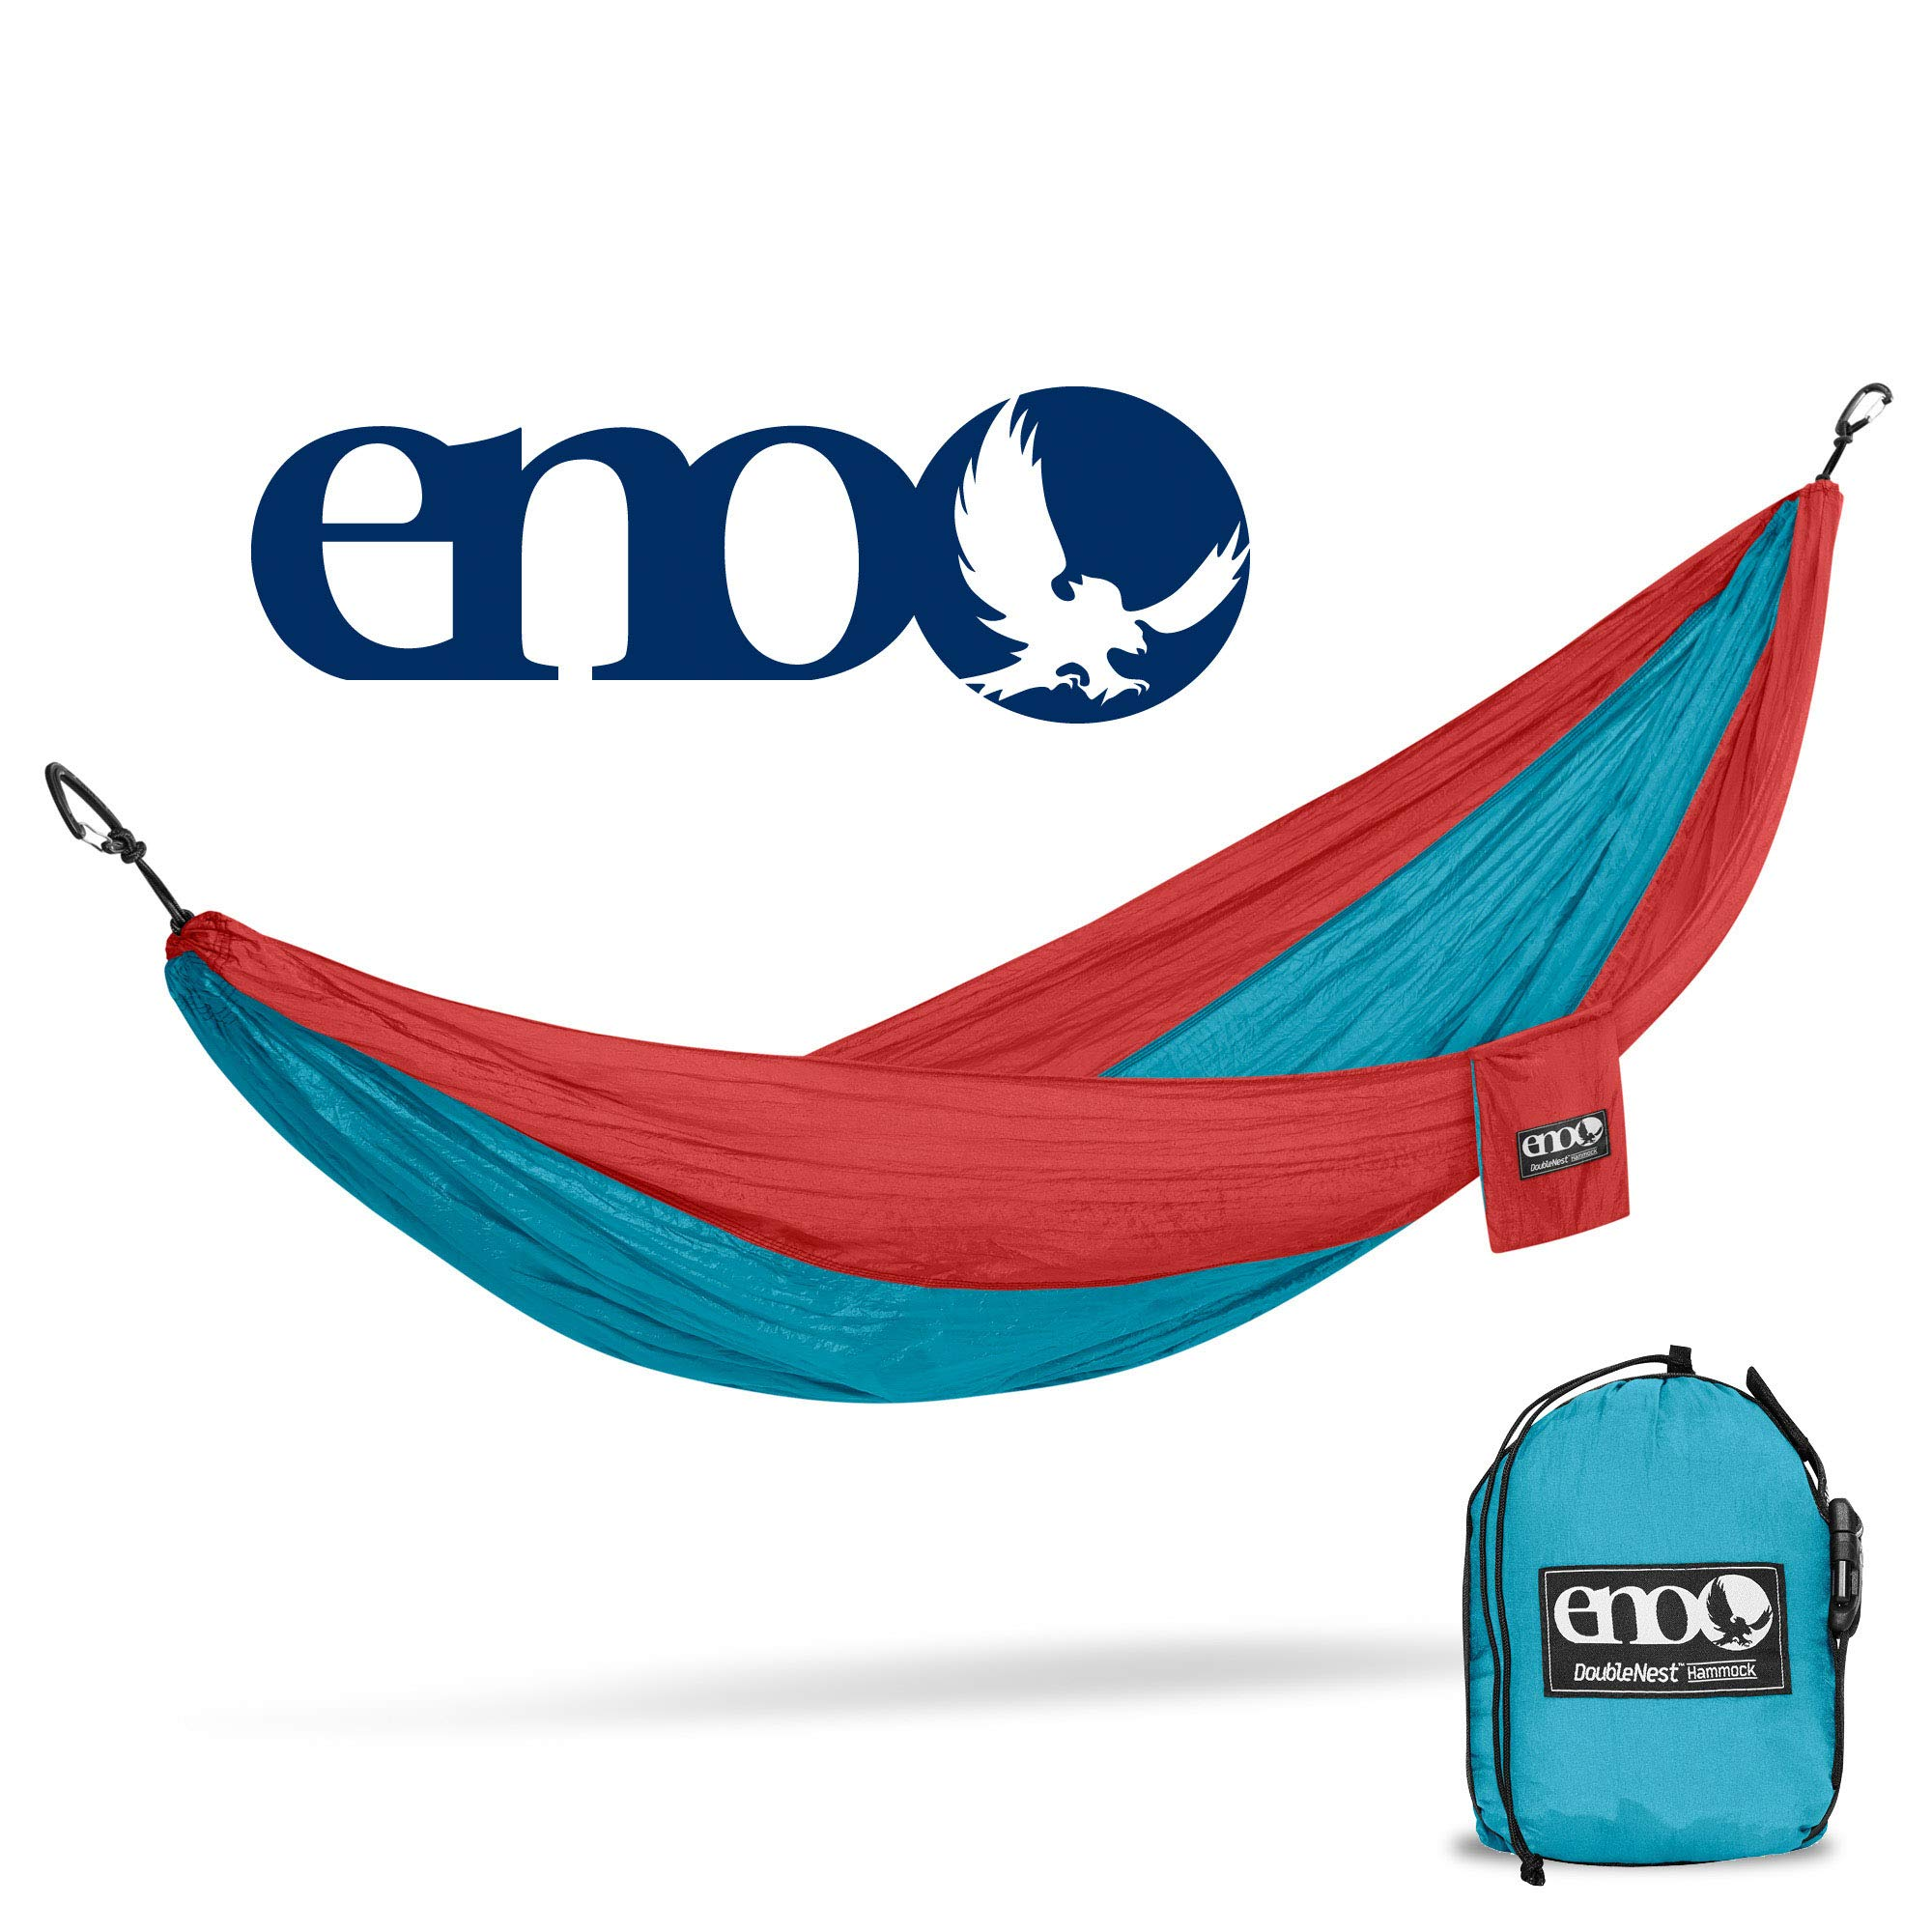 ENO - Eagles Nest Outfitters DoubleNest Hammock, Portable Hammock for Two, Aqua/Red